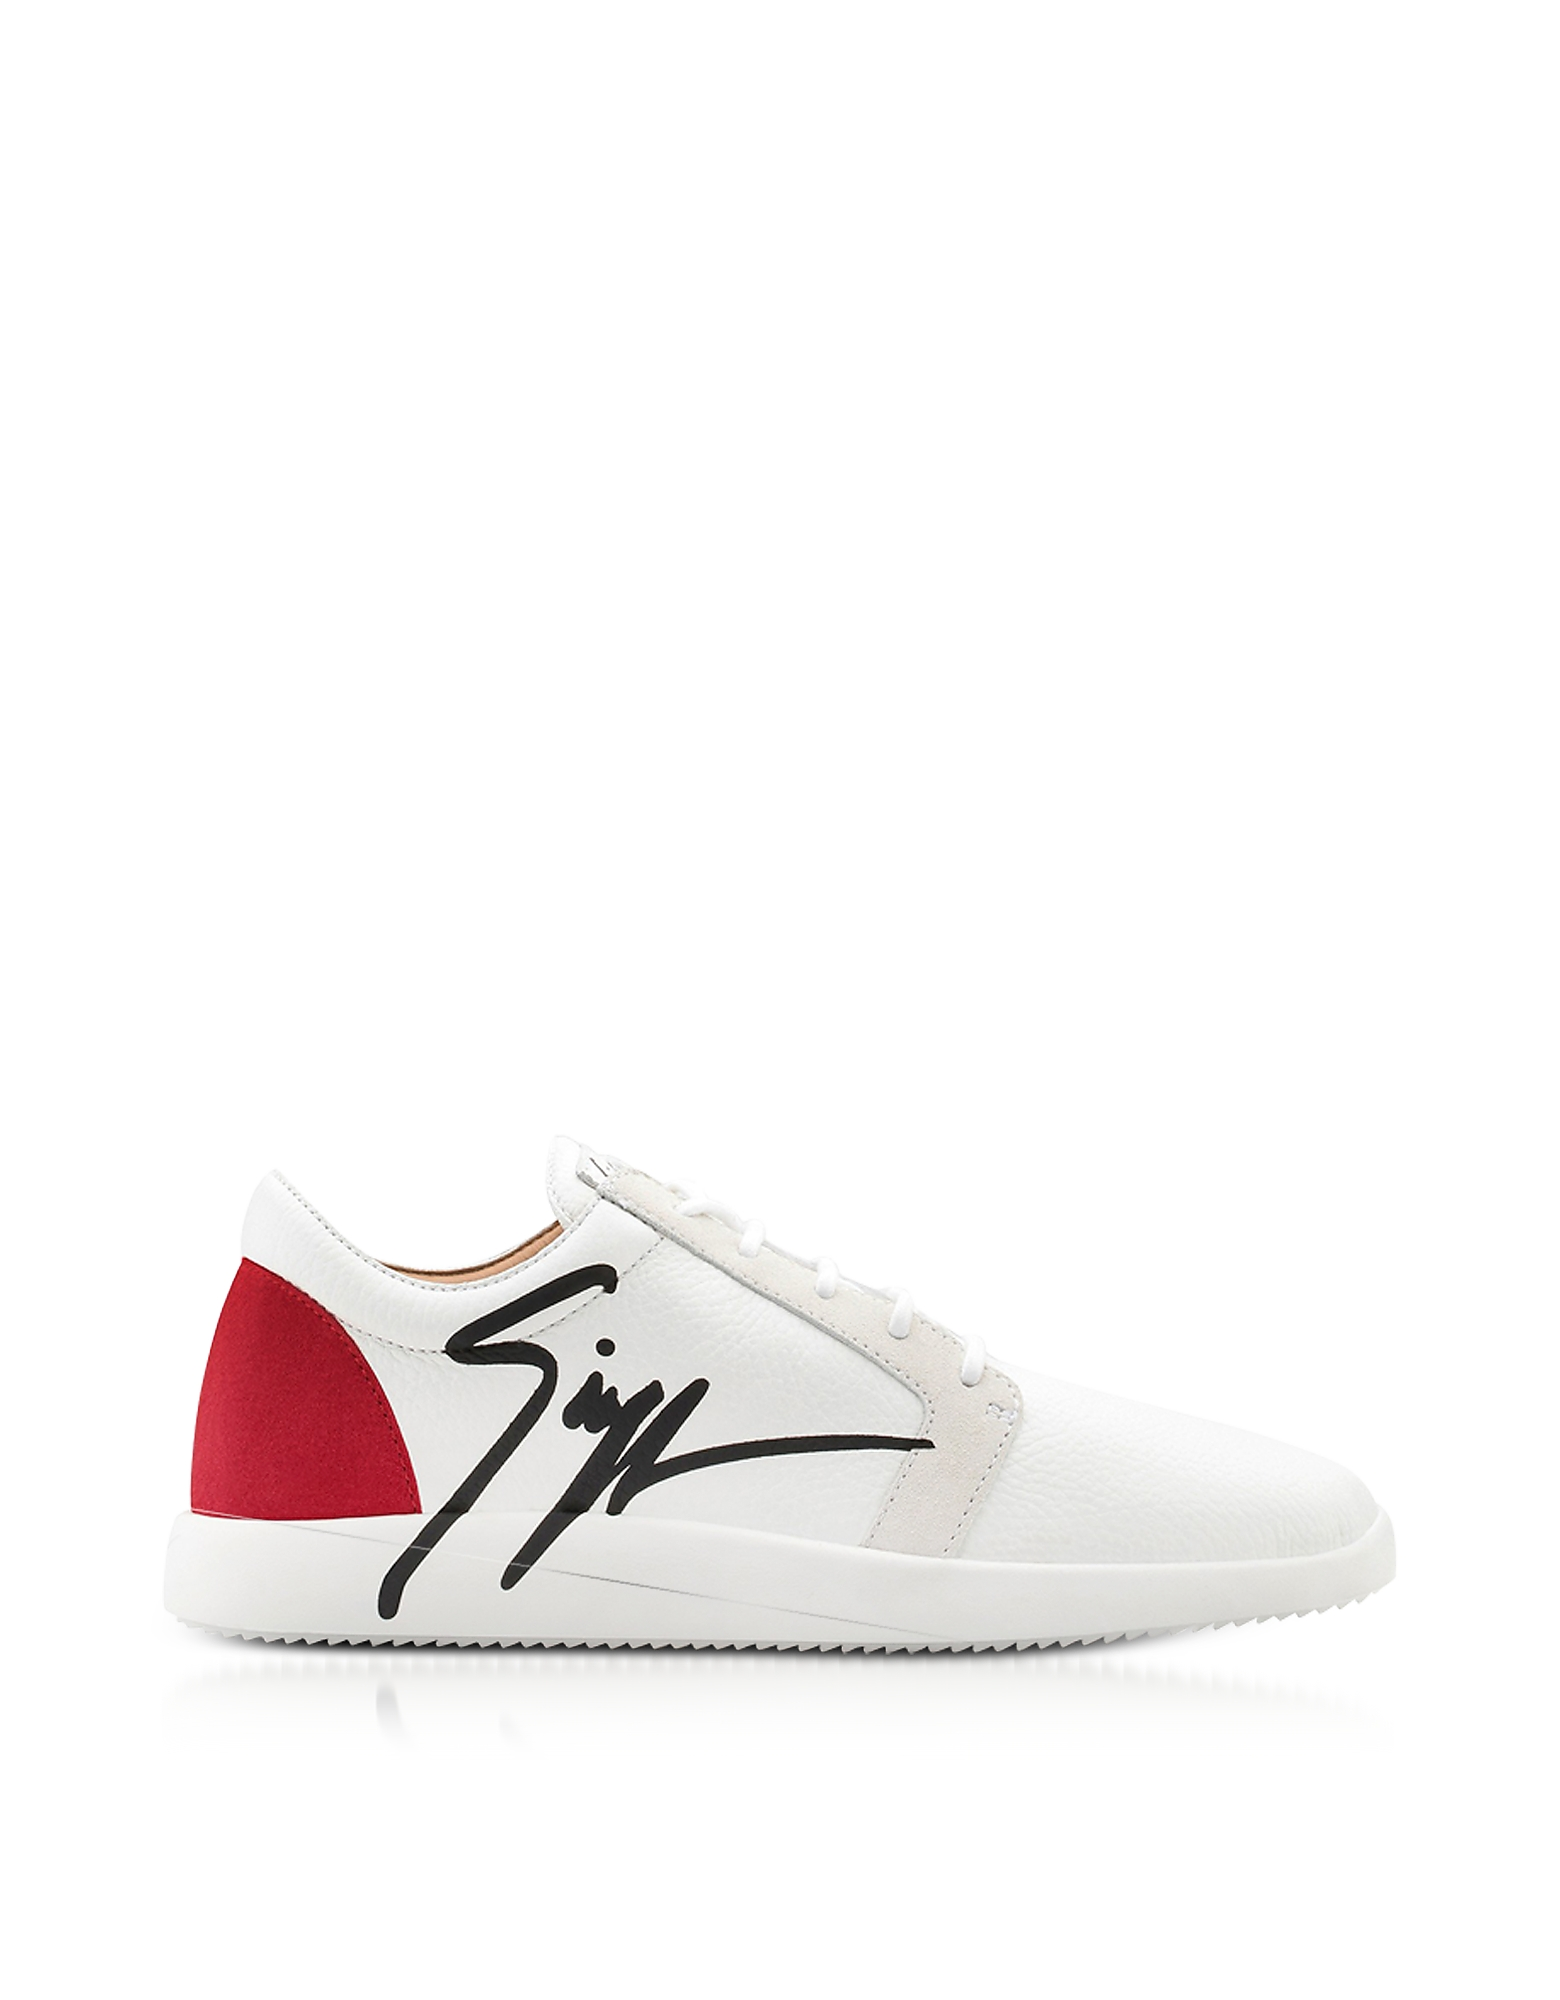 Giuseppe Zanotti Shoes, G Runner Red and White Low Top Men's Sneakers